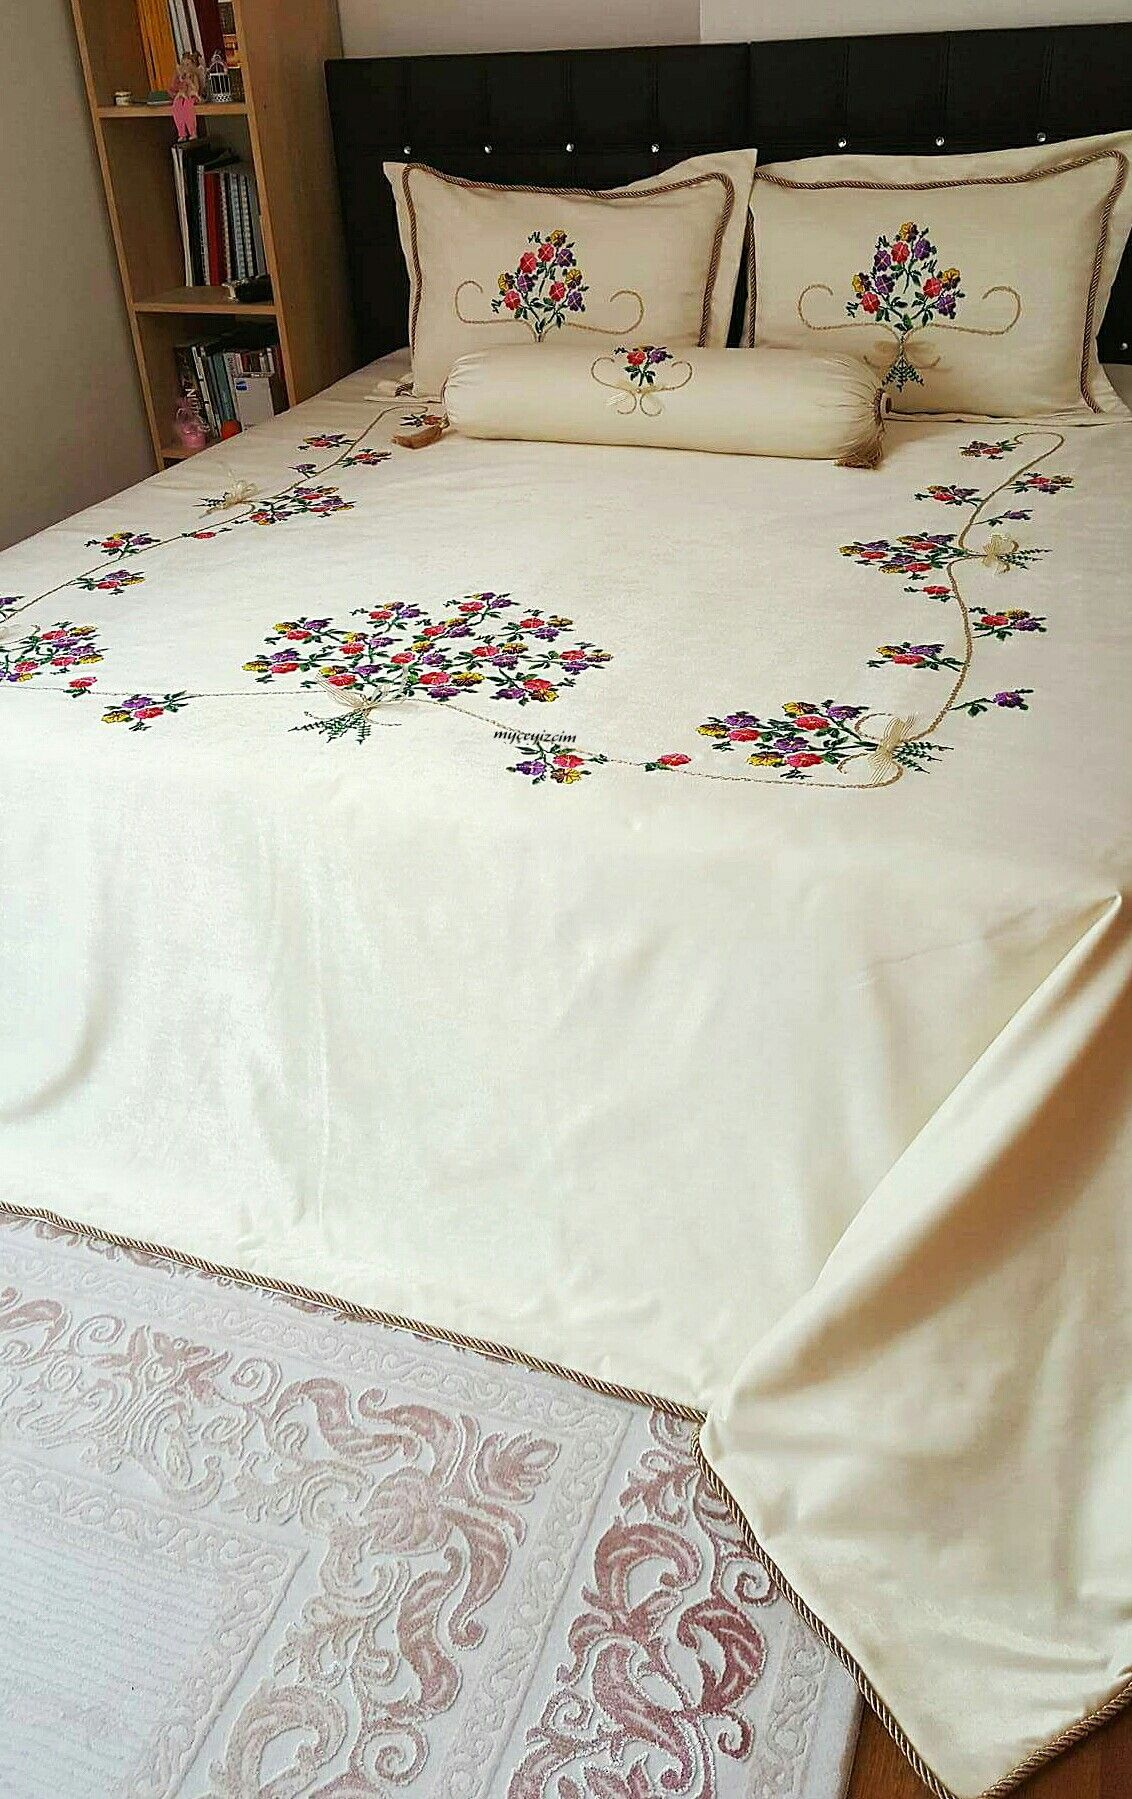 Ribbon embroidery bedspread designs - Ribbons